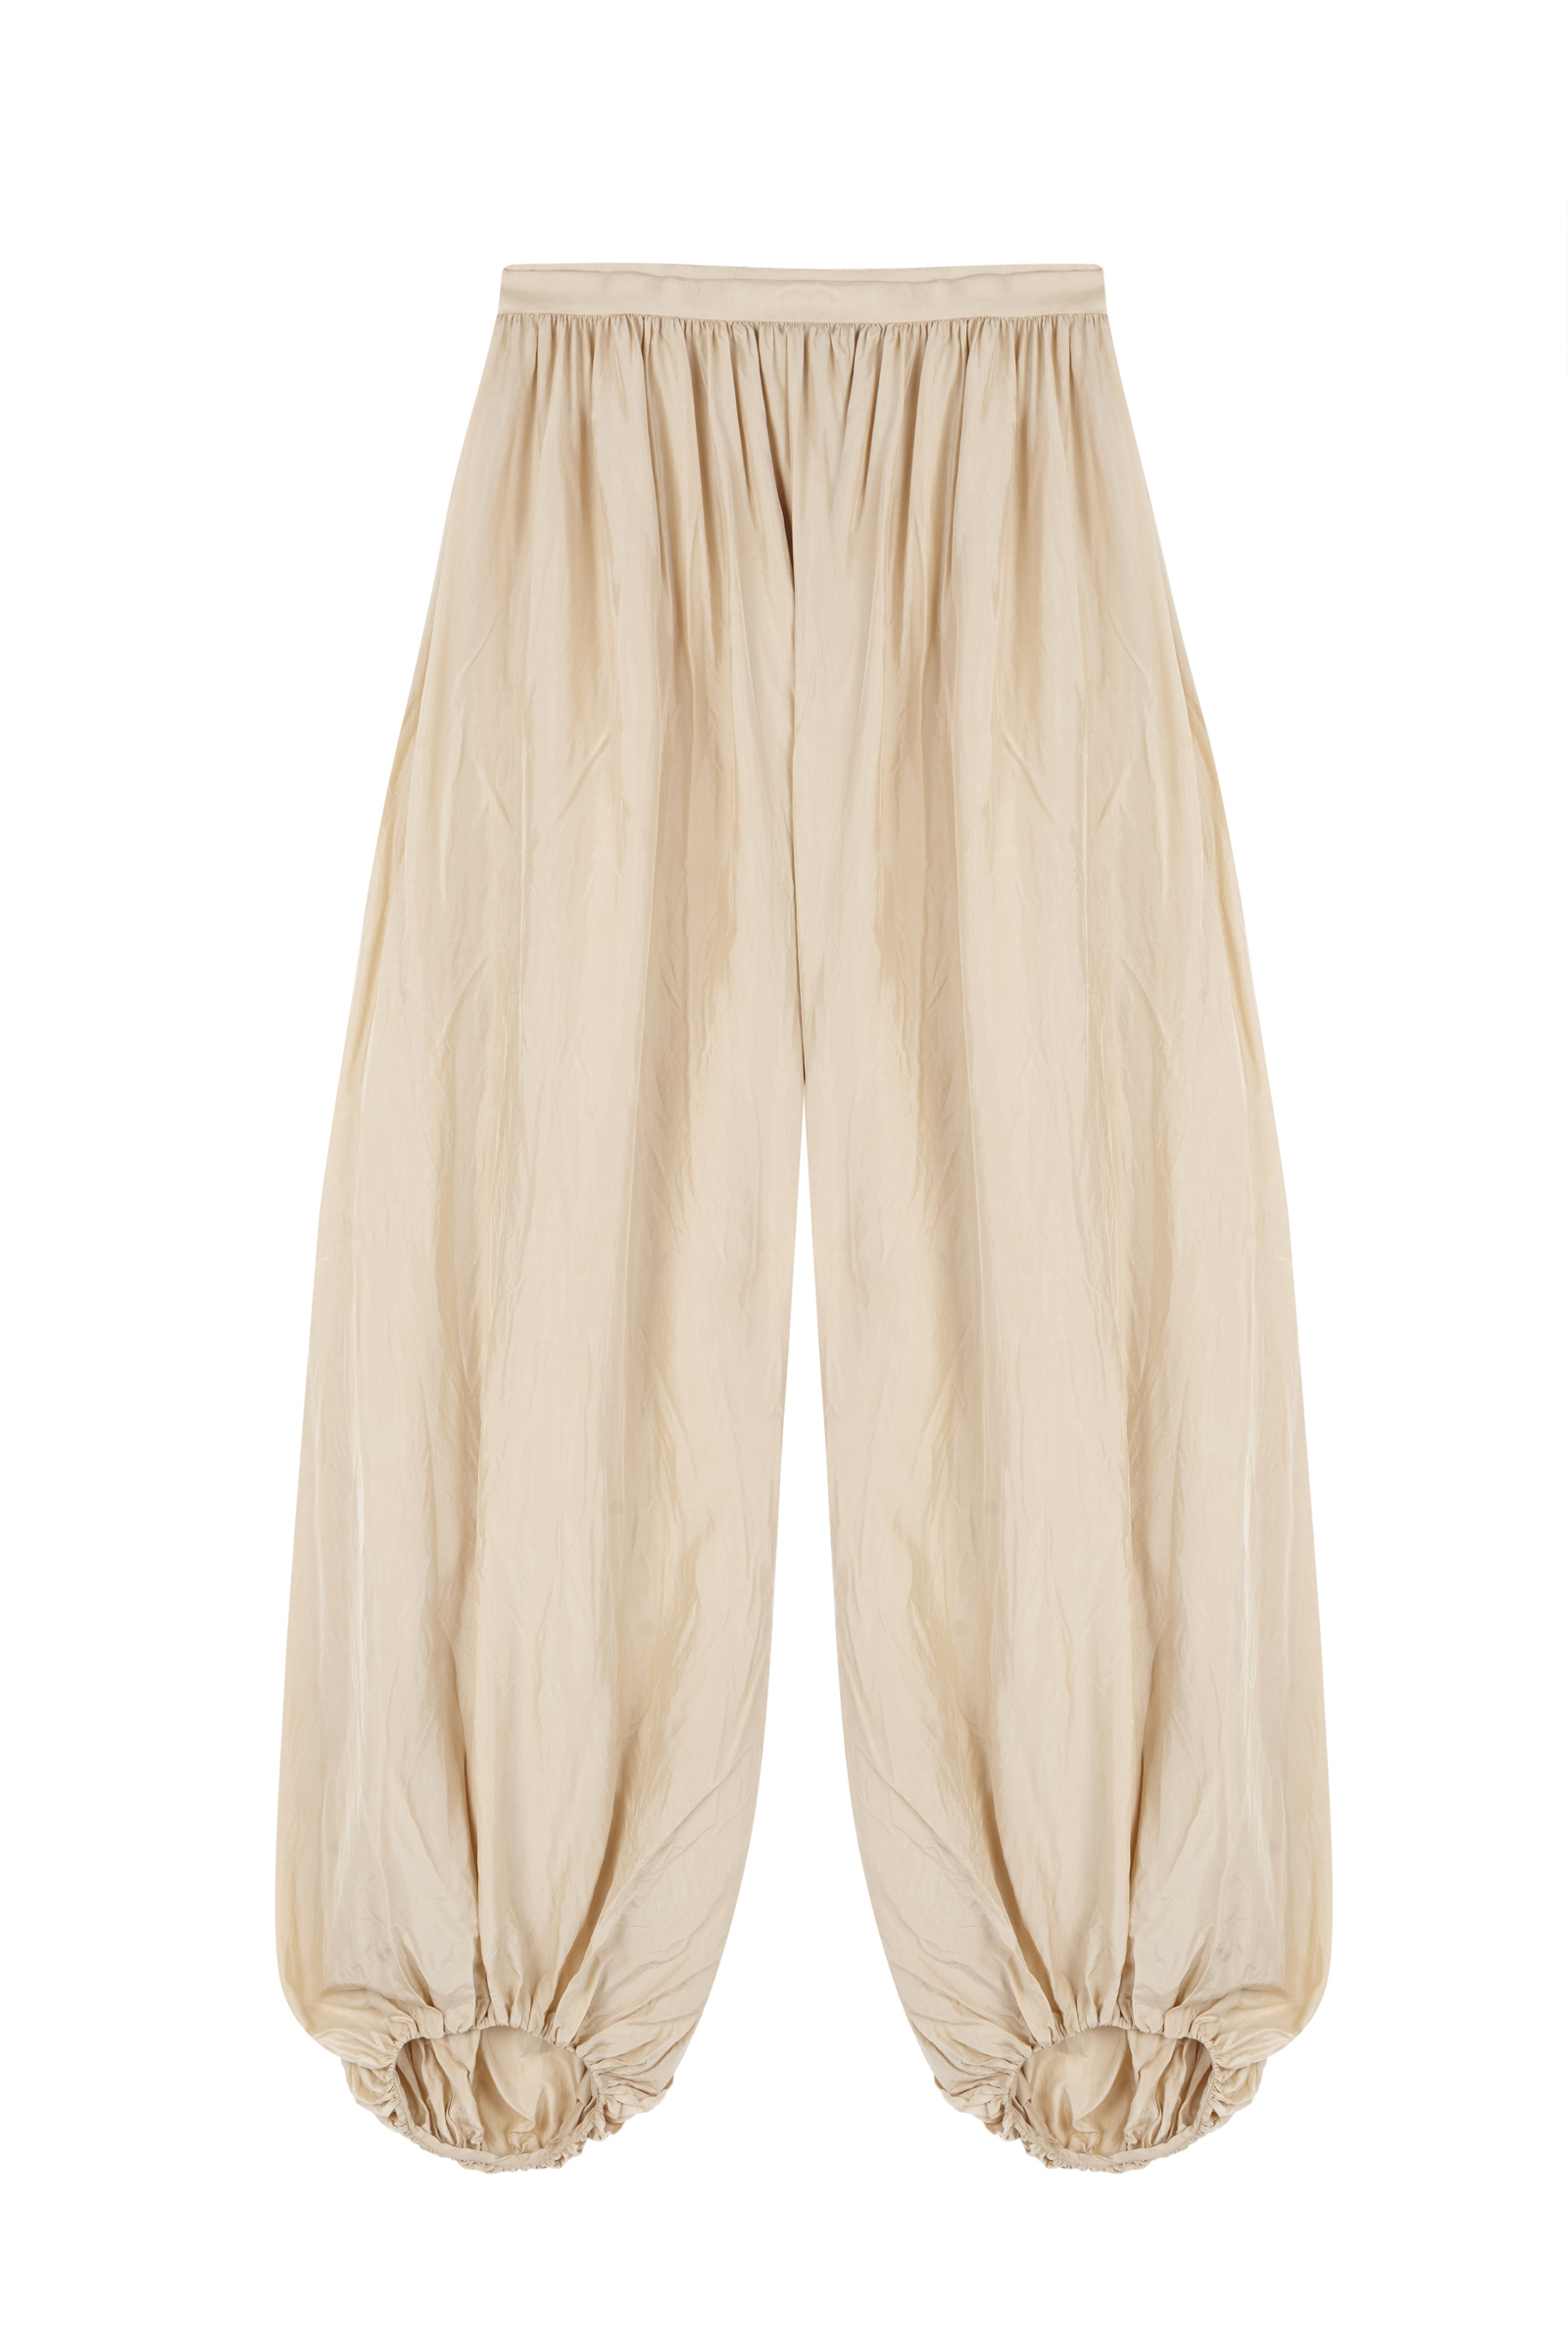 FIGA, BEIGE SILK PANTS - Cortana